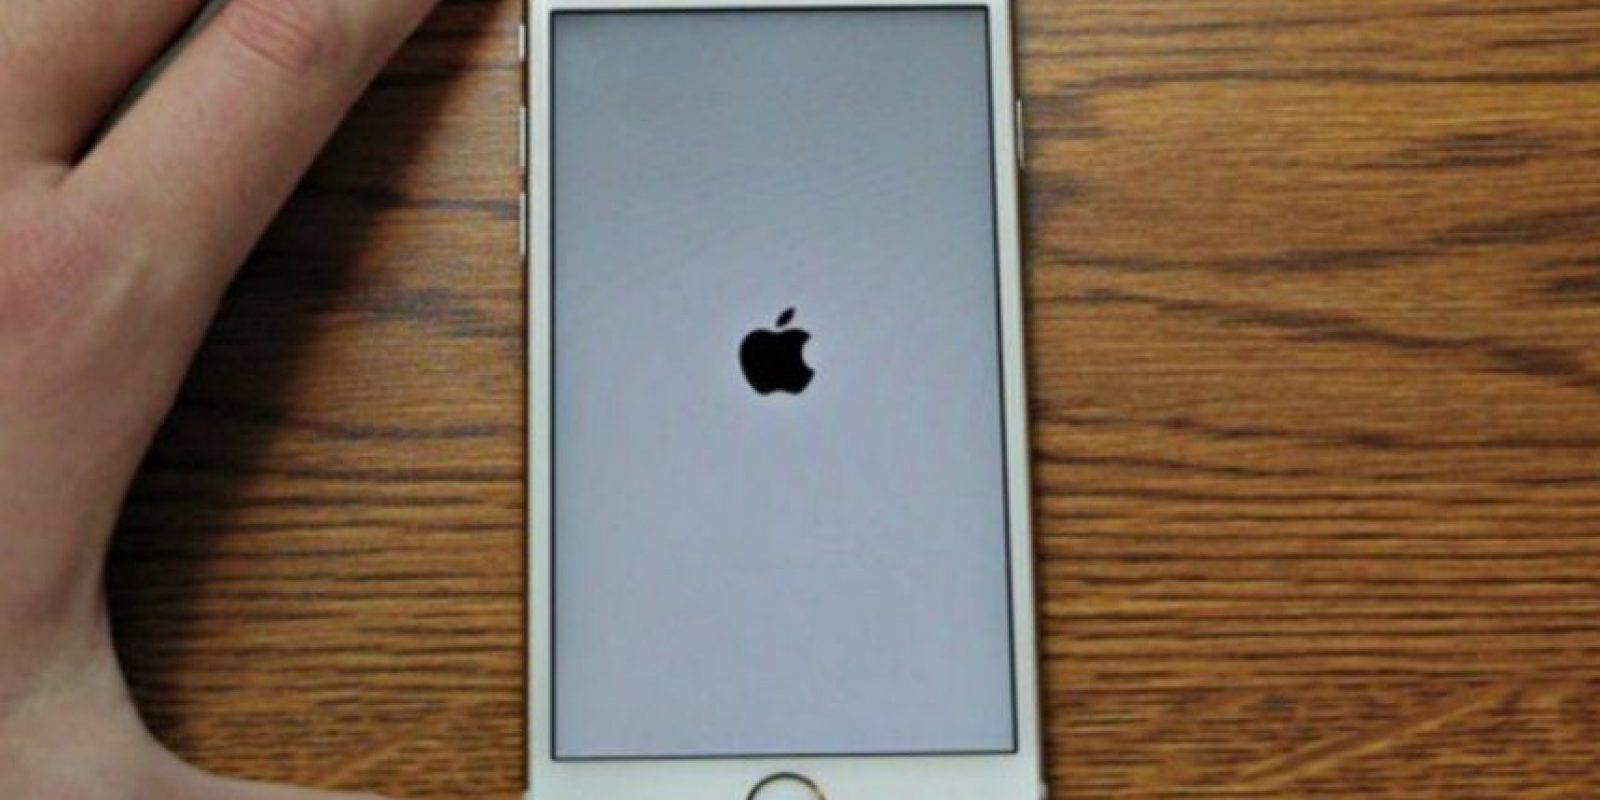 Un error en el iPhone provoca que se quede en la pantalla del logo de Apple. Foto: Vía Zach Straley/YouTube